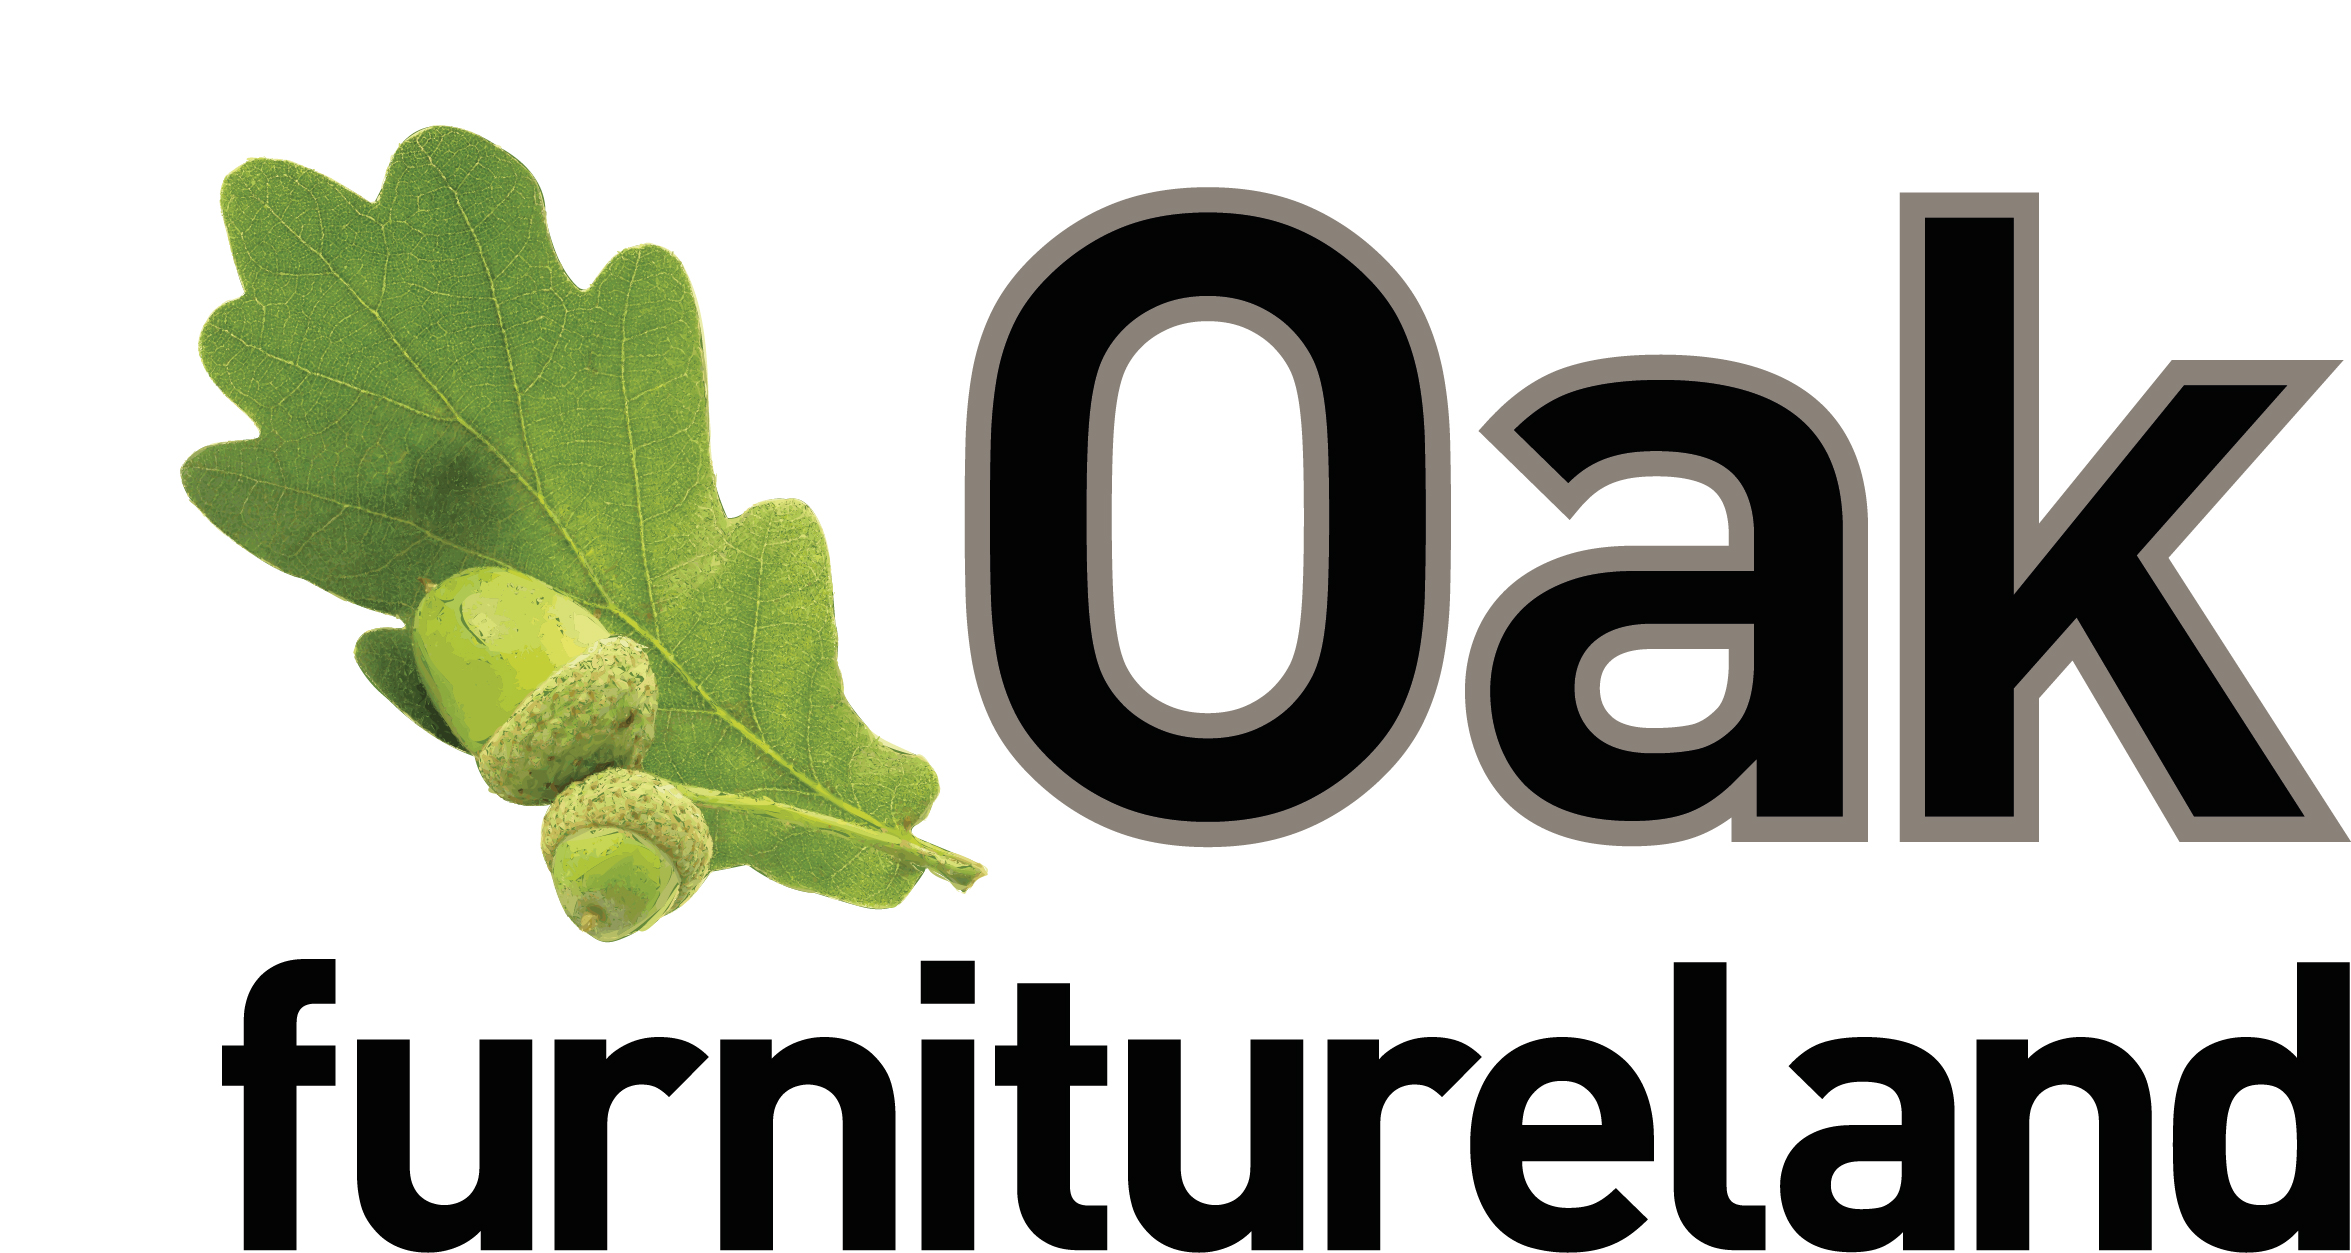 Oak Furniture Land Tv Commercial Equinox Video Content Production